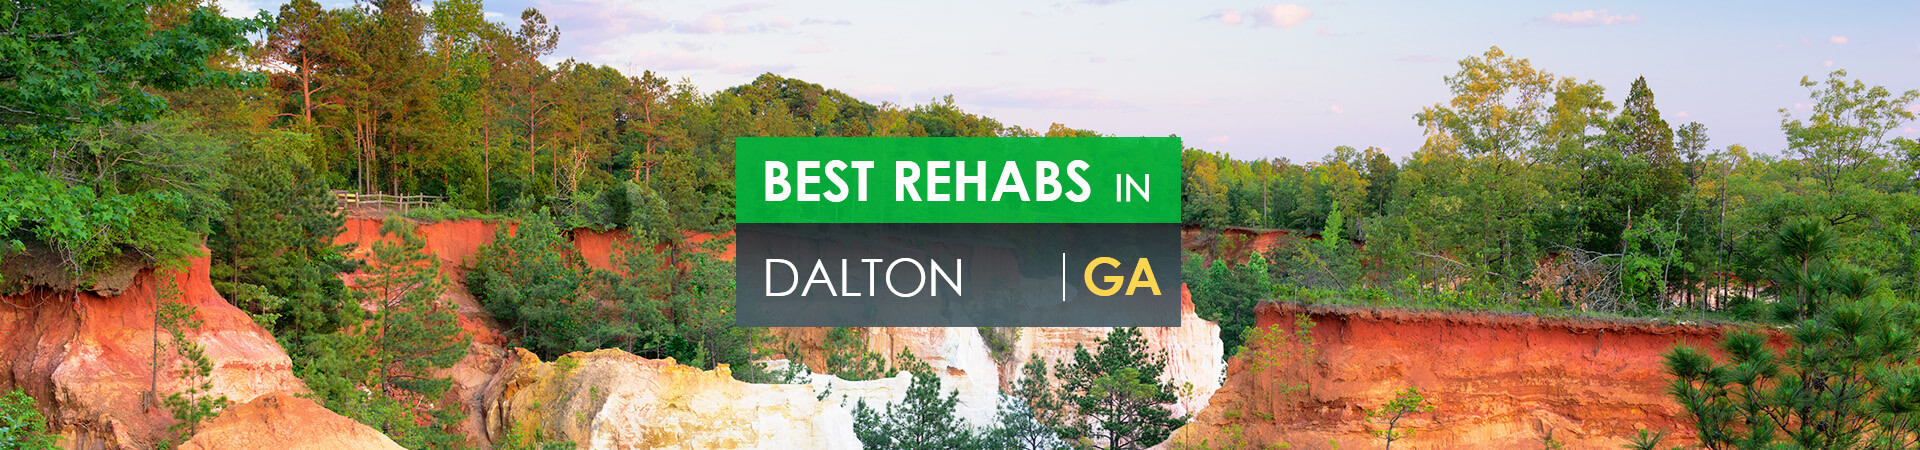 Best rehabs in Dalton, GA